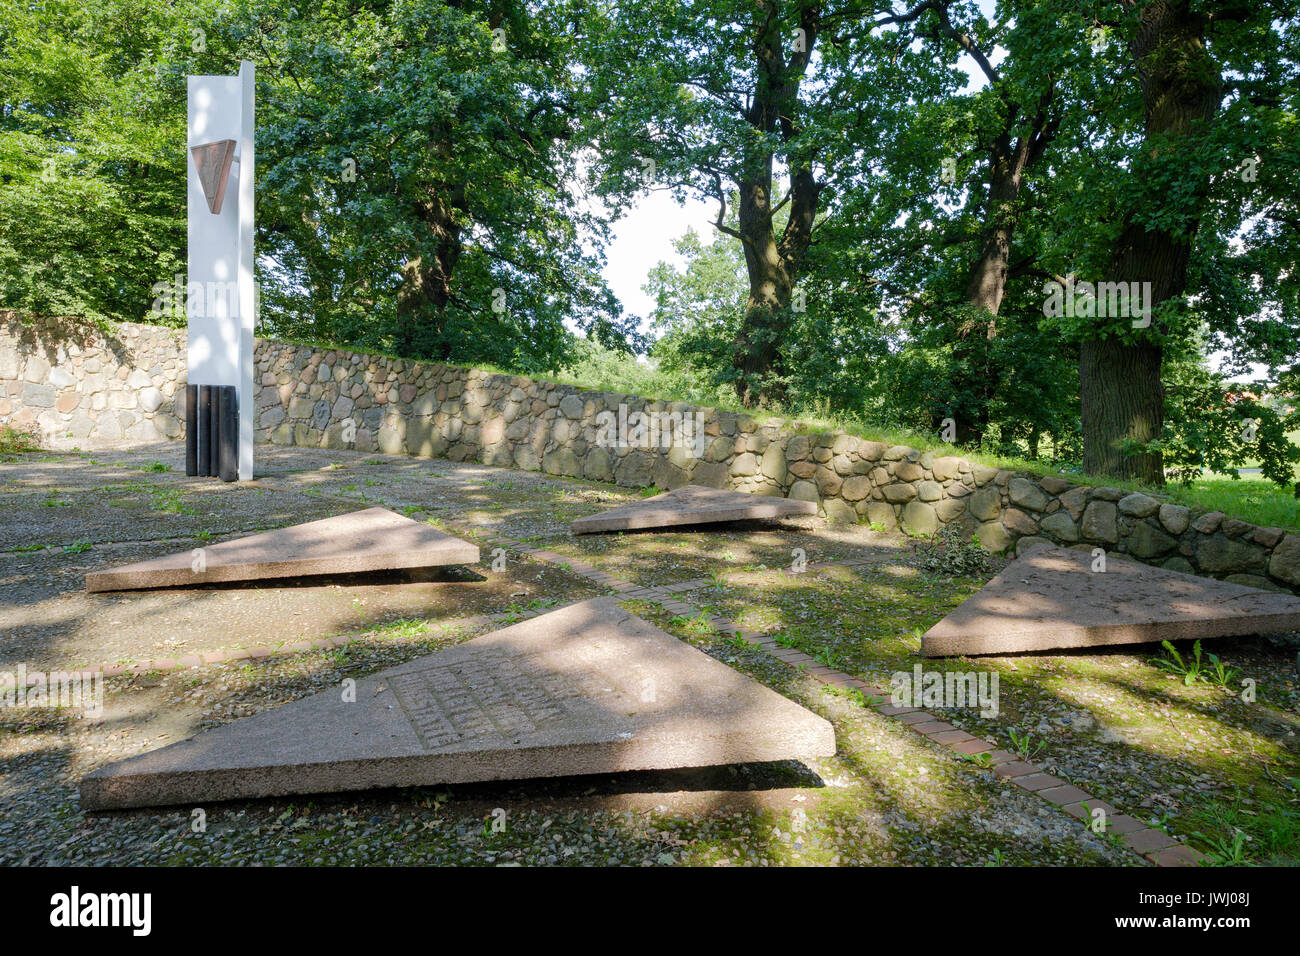 Monument to victims of Cap Arcona, Poel, Mecklenburg-Vorpommern, Germany - Stock Image